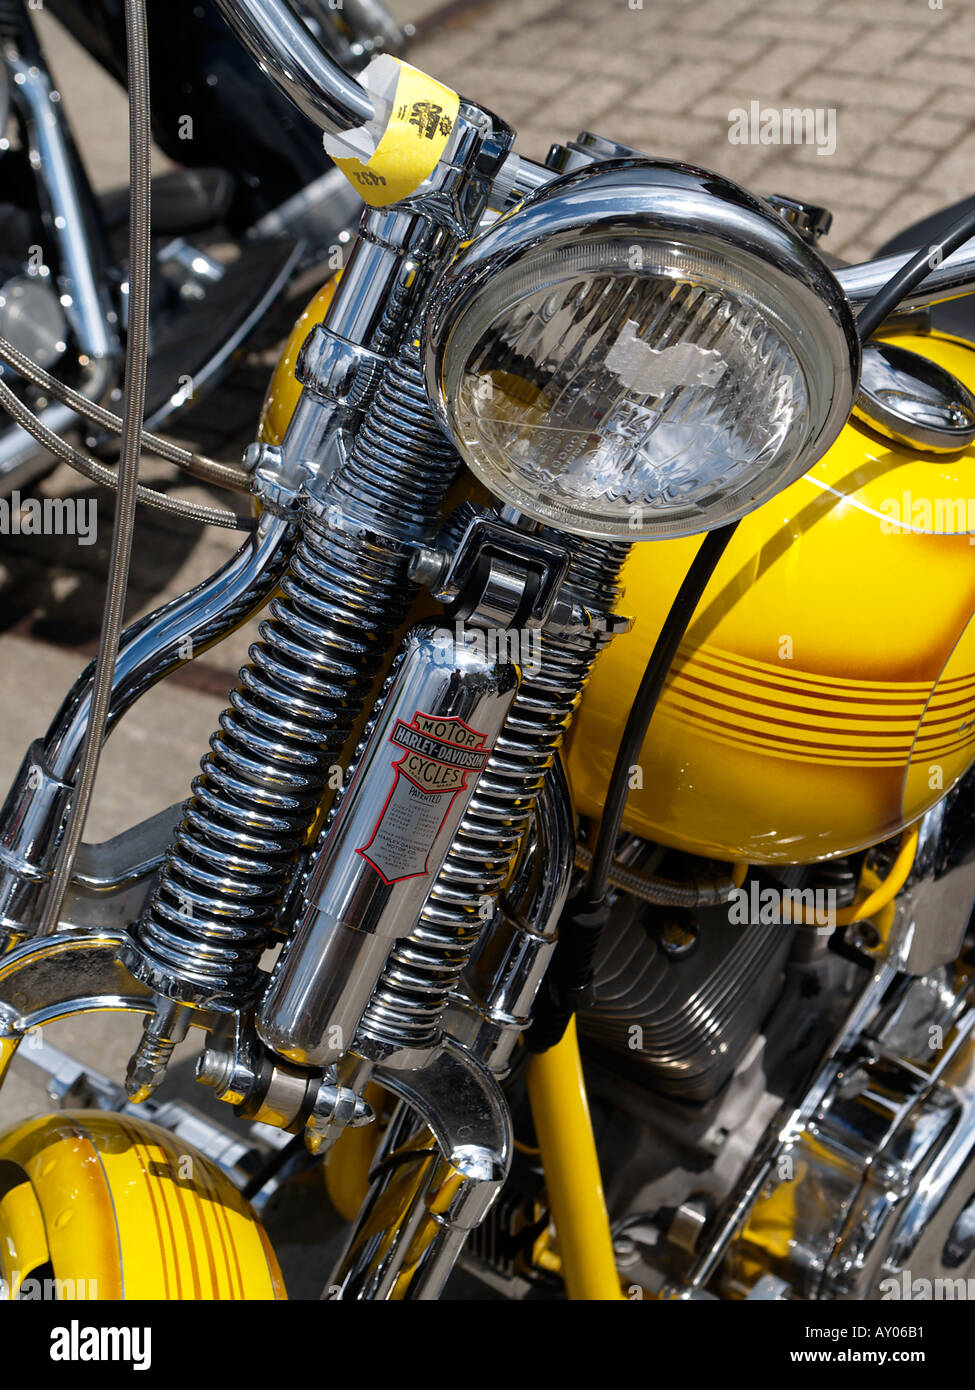 Harley Davidson springer old style front suspension with chrome springs and shock absorber on a yellow bike - Stock Image